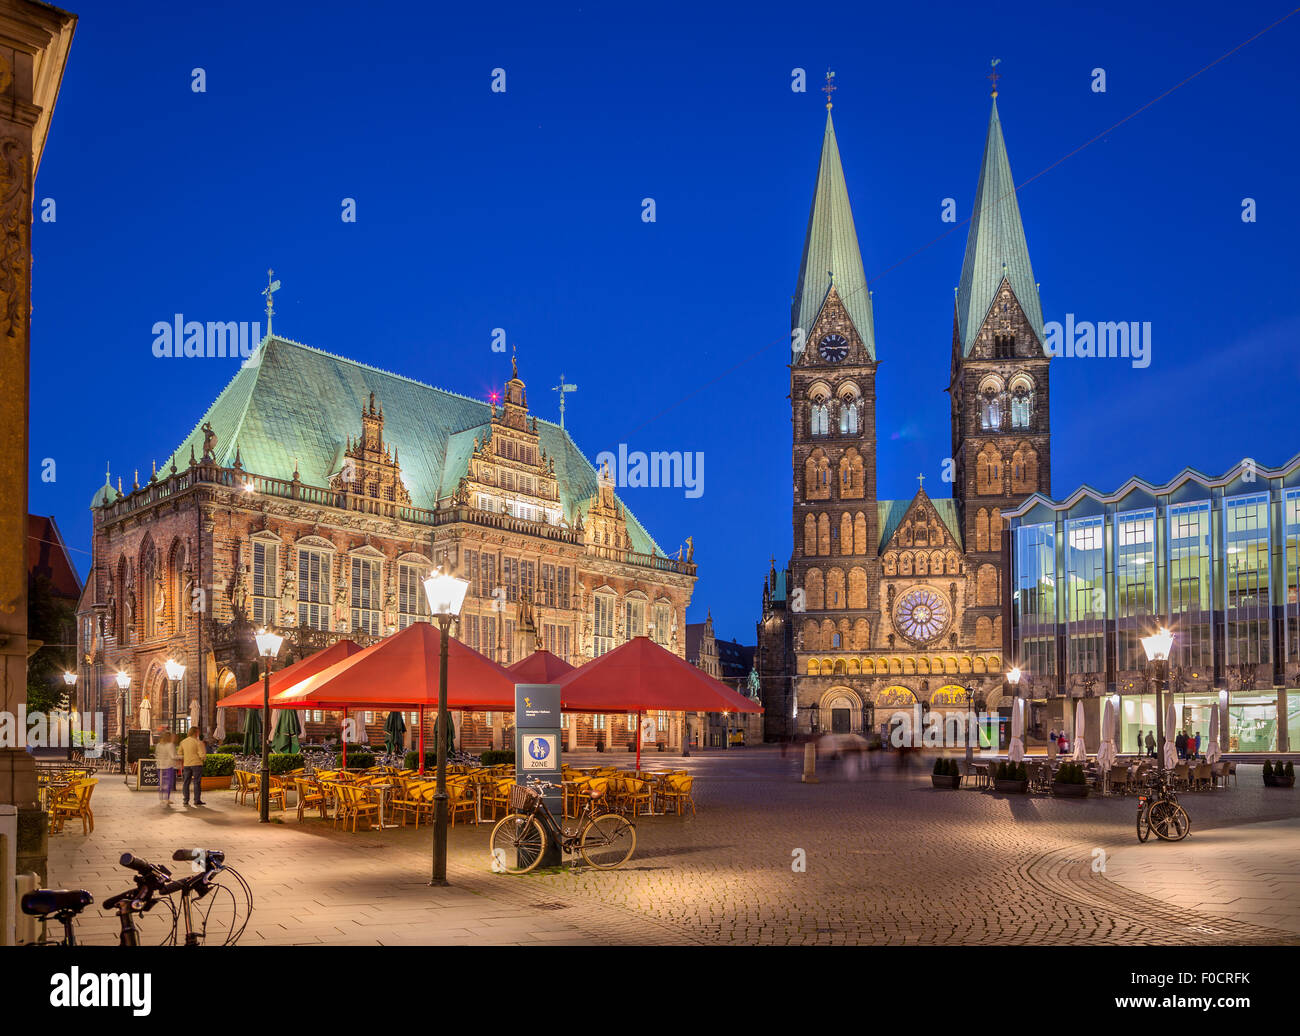 Bremen Market Square situated in the center of the Hanseatic City of Bremen, Germany and is one of the oldest public - Stock Image